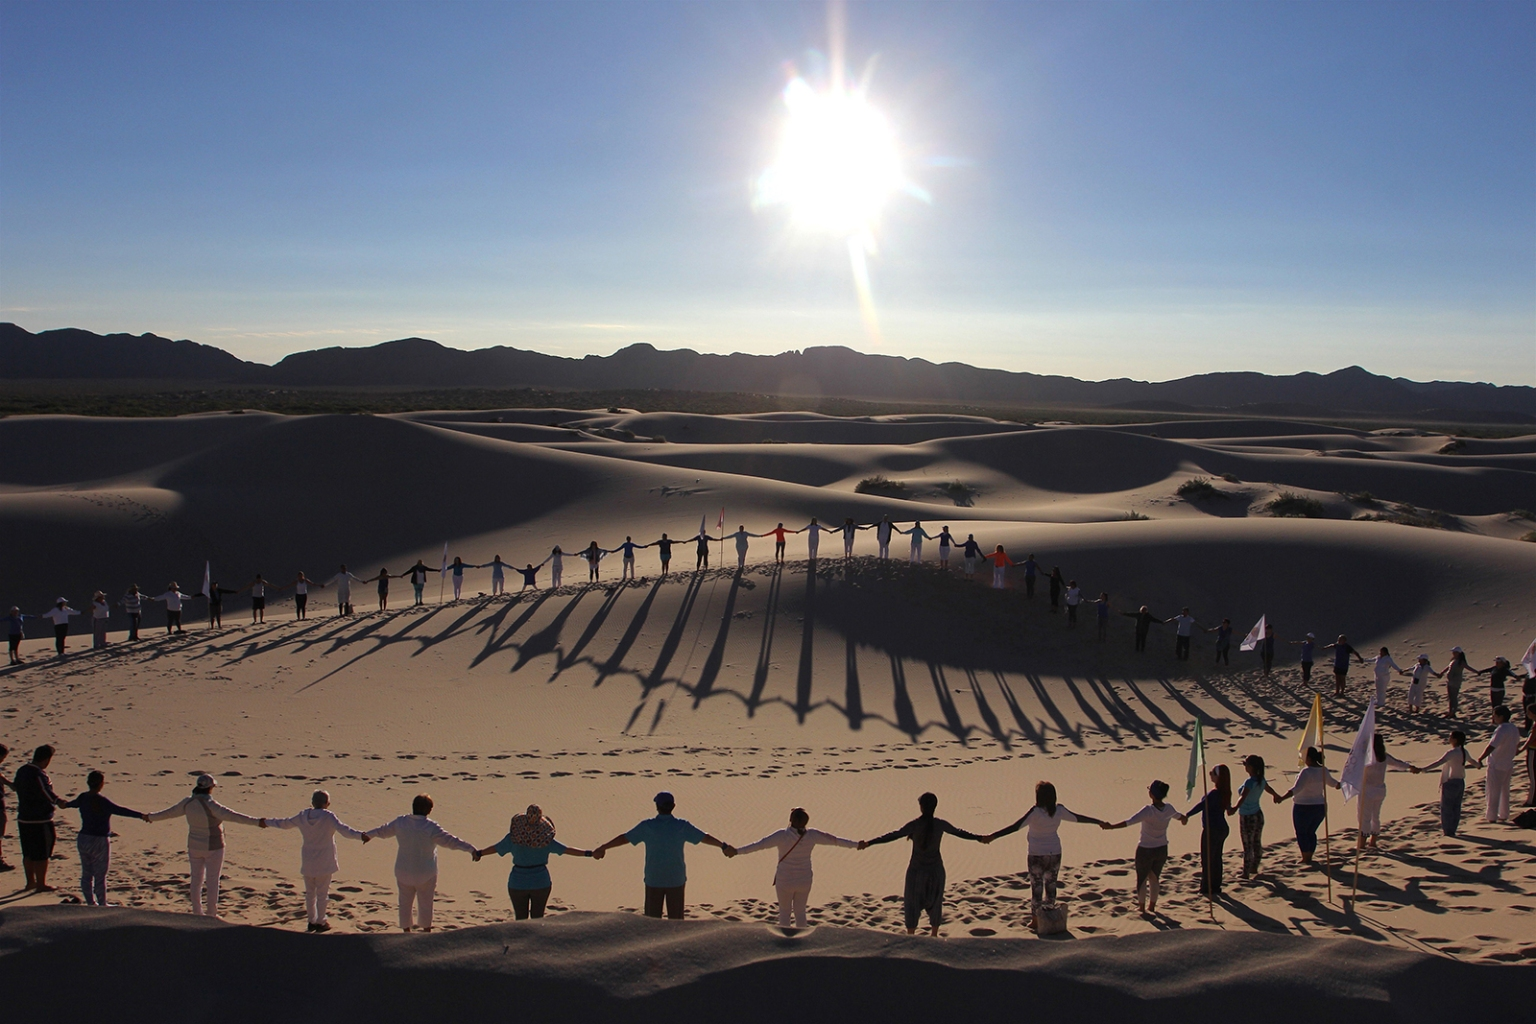 People attend a yoga class in the Samalayuca Dune Fields in the municipality of Juarez, Chihuahua State, Mexico, on May 25. HERIKA MARTINEZ/AFP/Getty Images